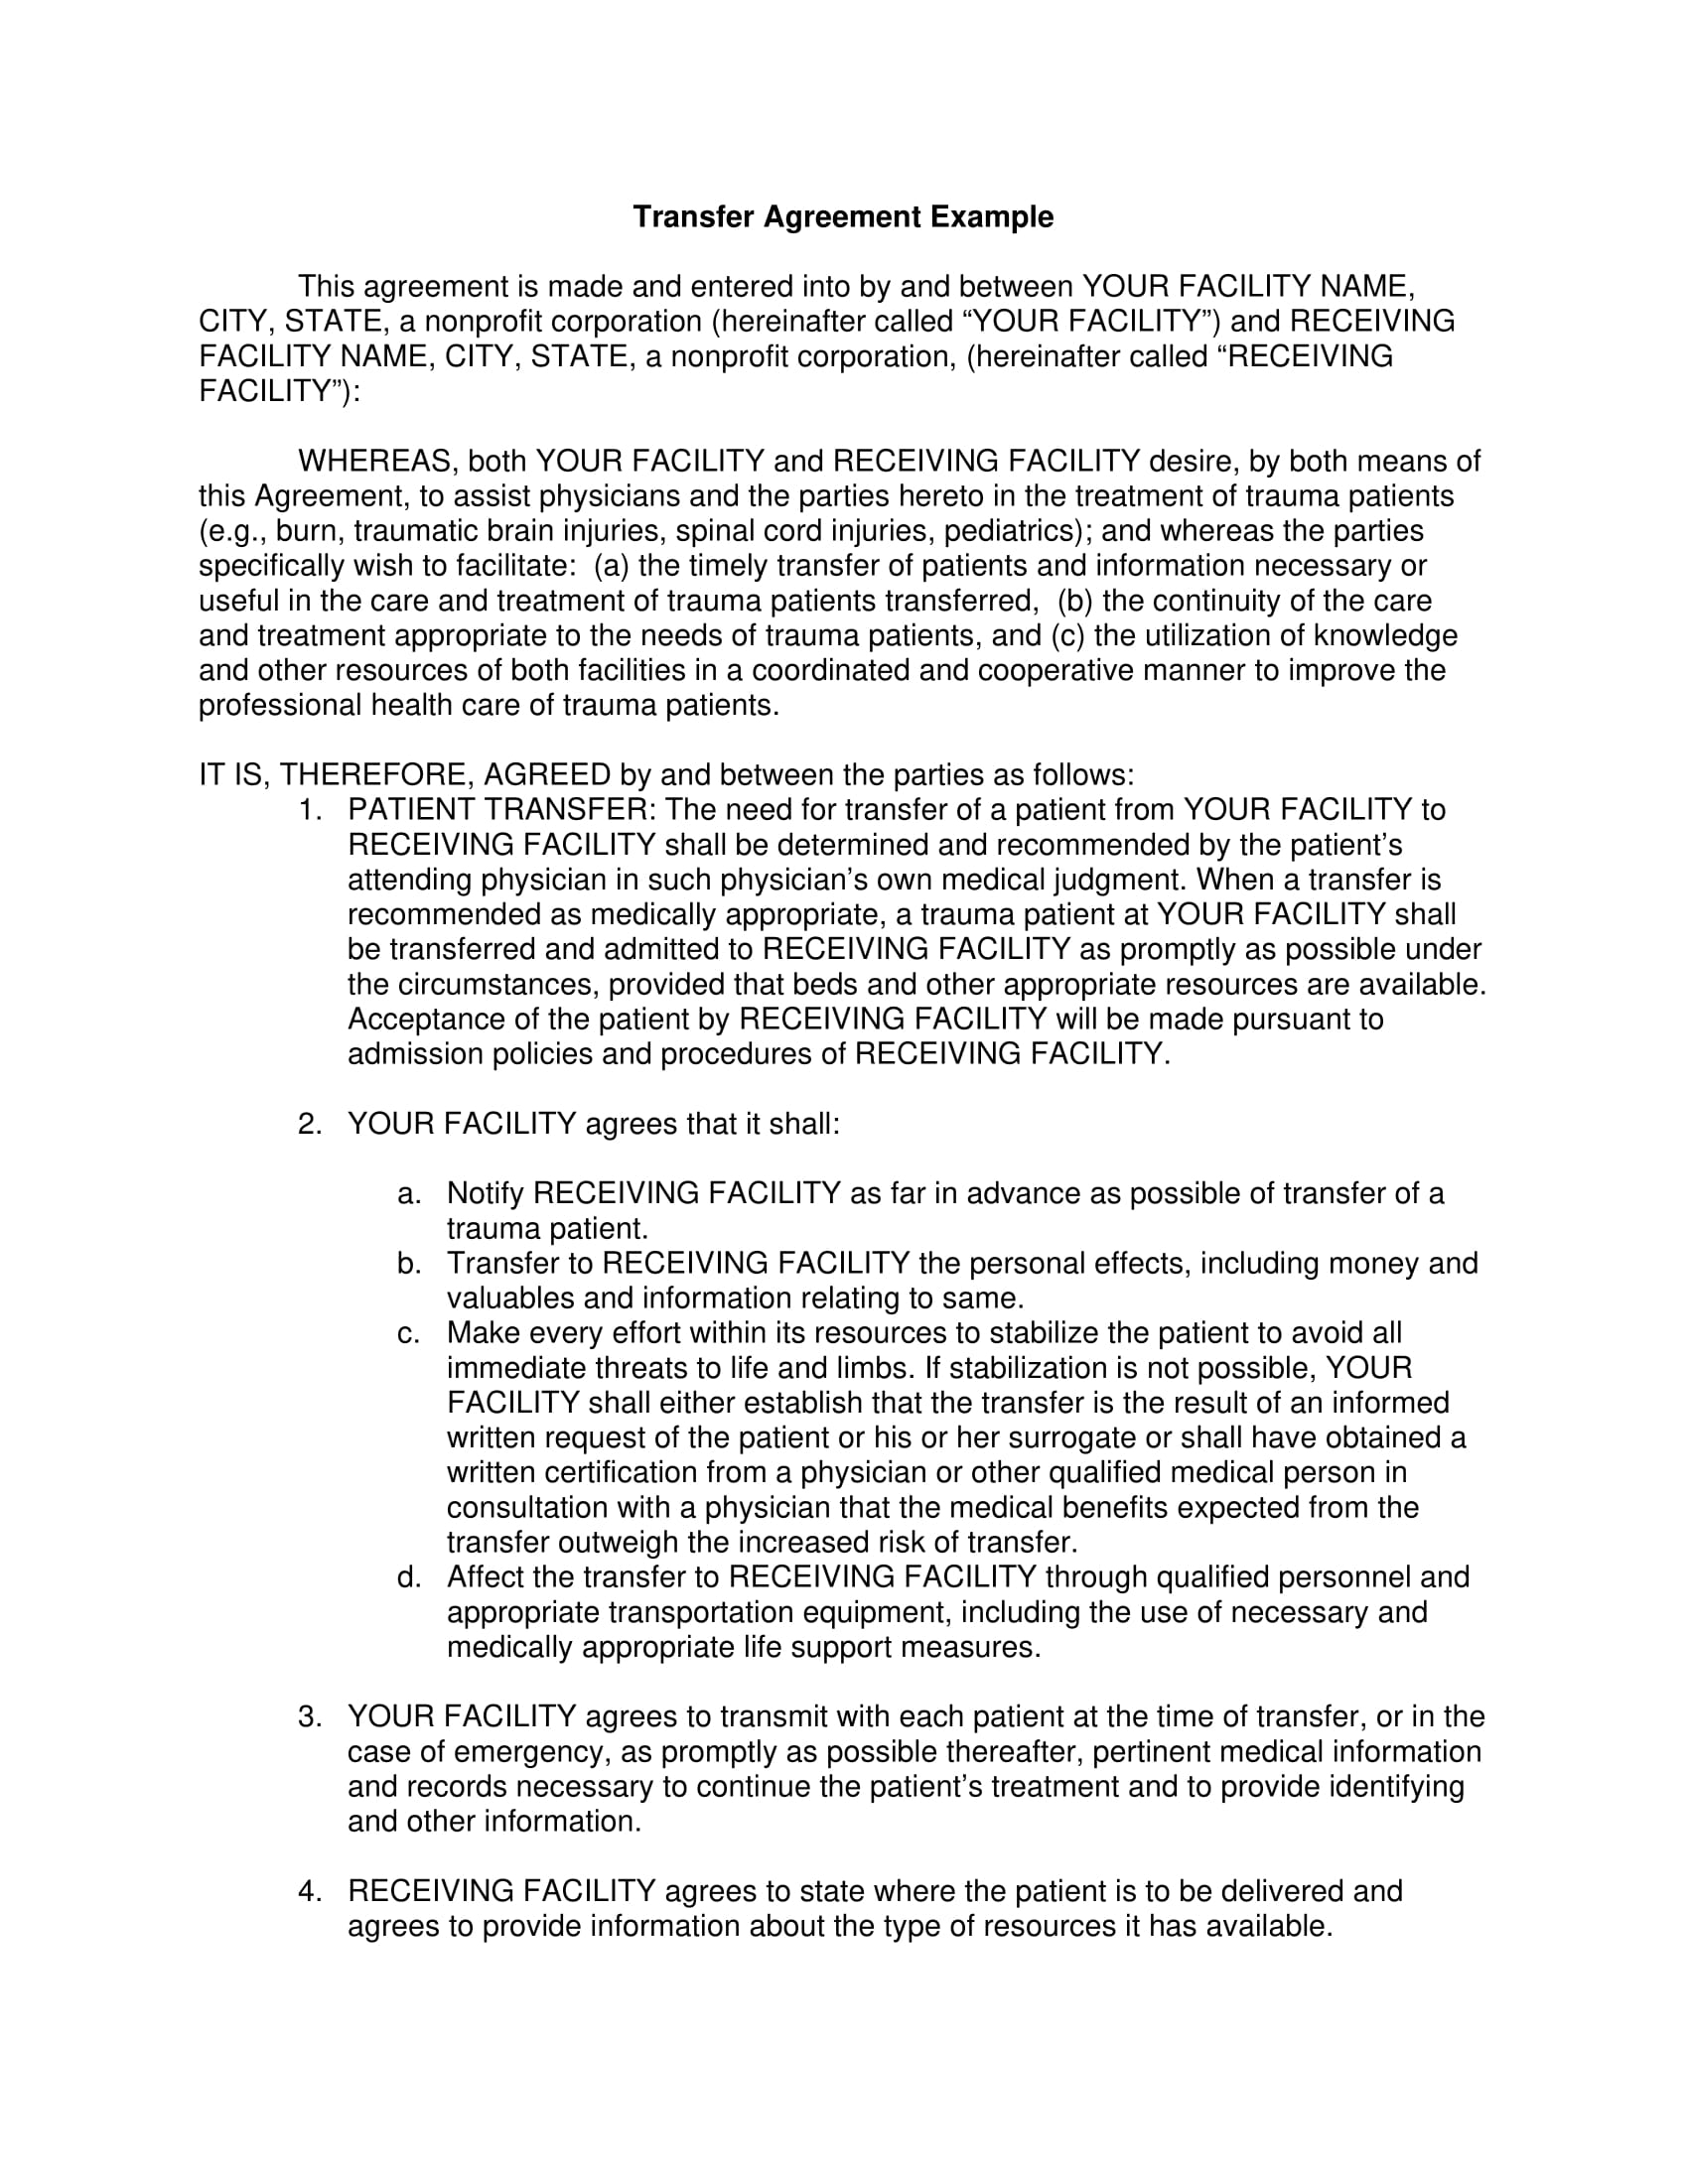 facility transfer agreement example 1